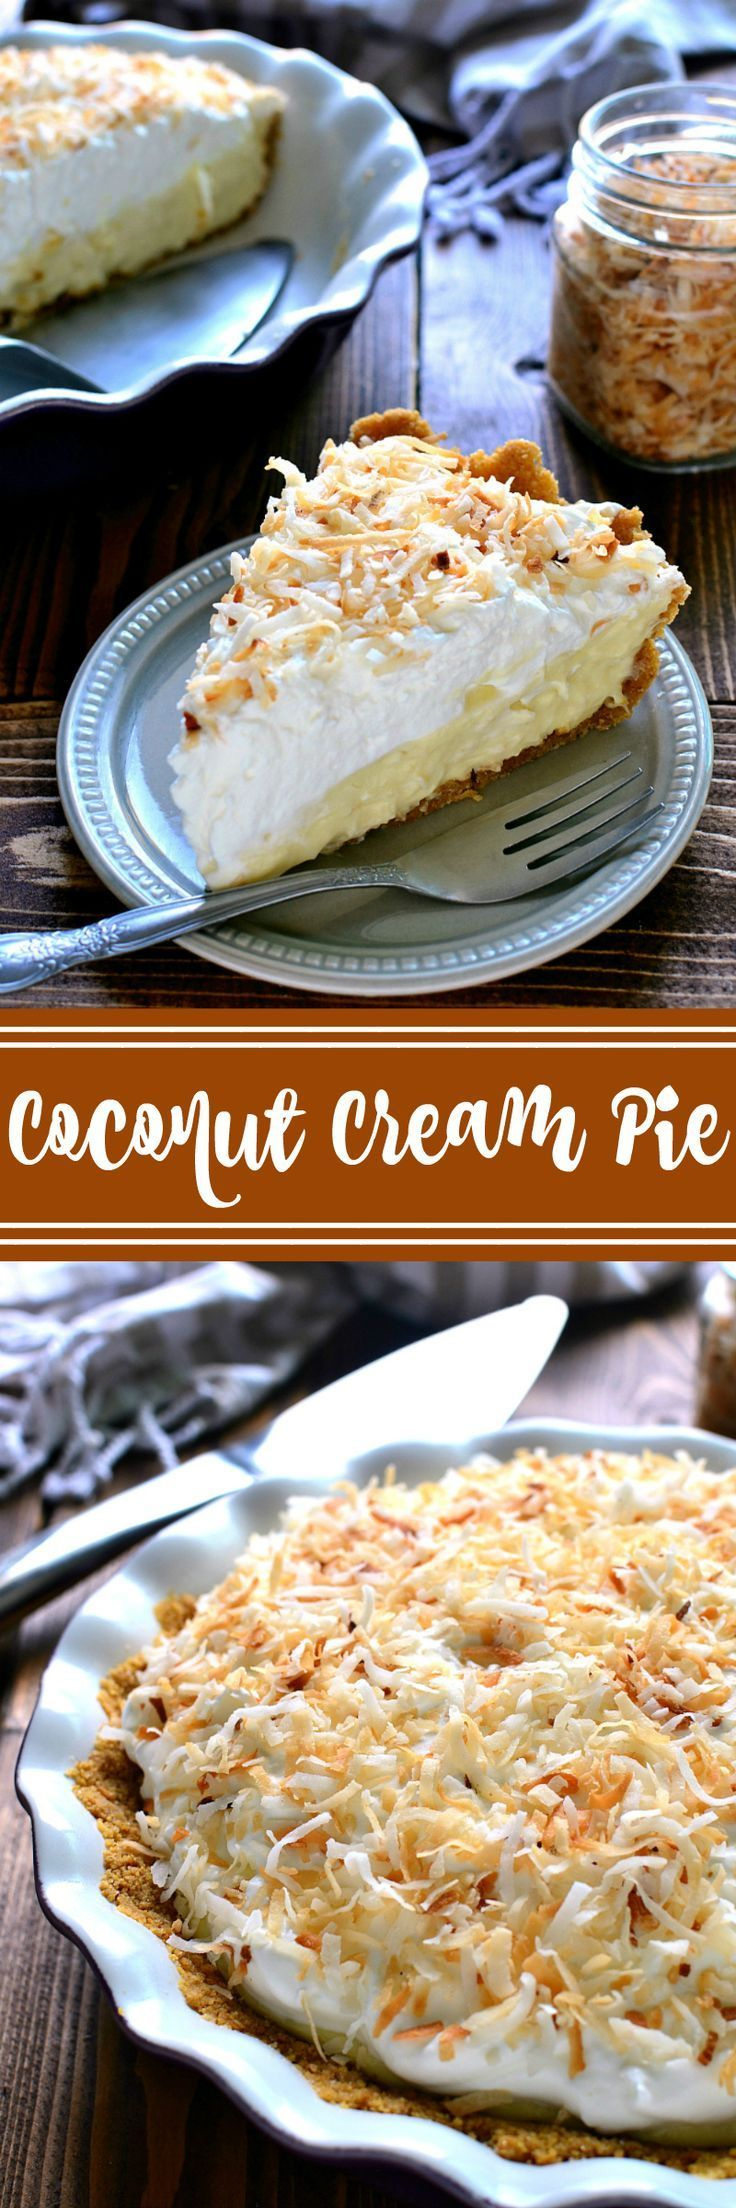 This Coconut Cream Pie is smooth and luscious and creamy....and filled with the delicious flavors of toasted coconut and vanilla. Perfect for Easter, perfect for spring, the perfect piece of pie!